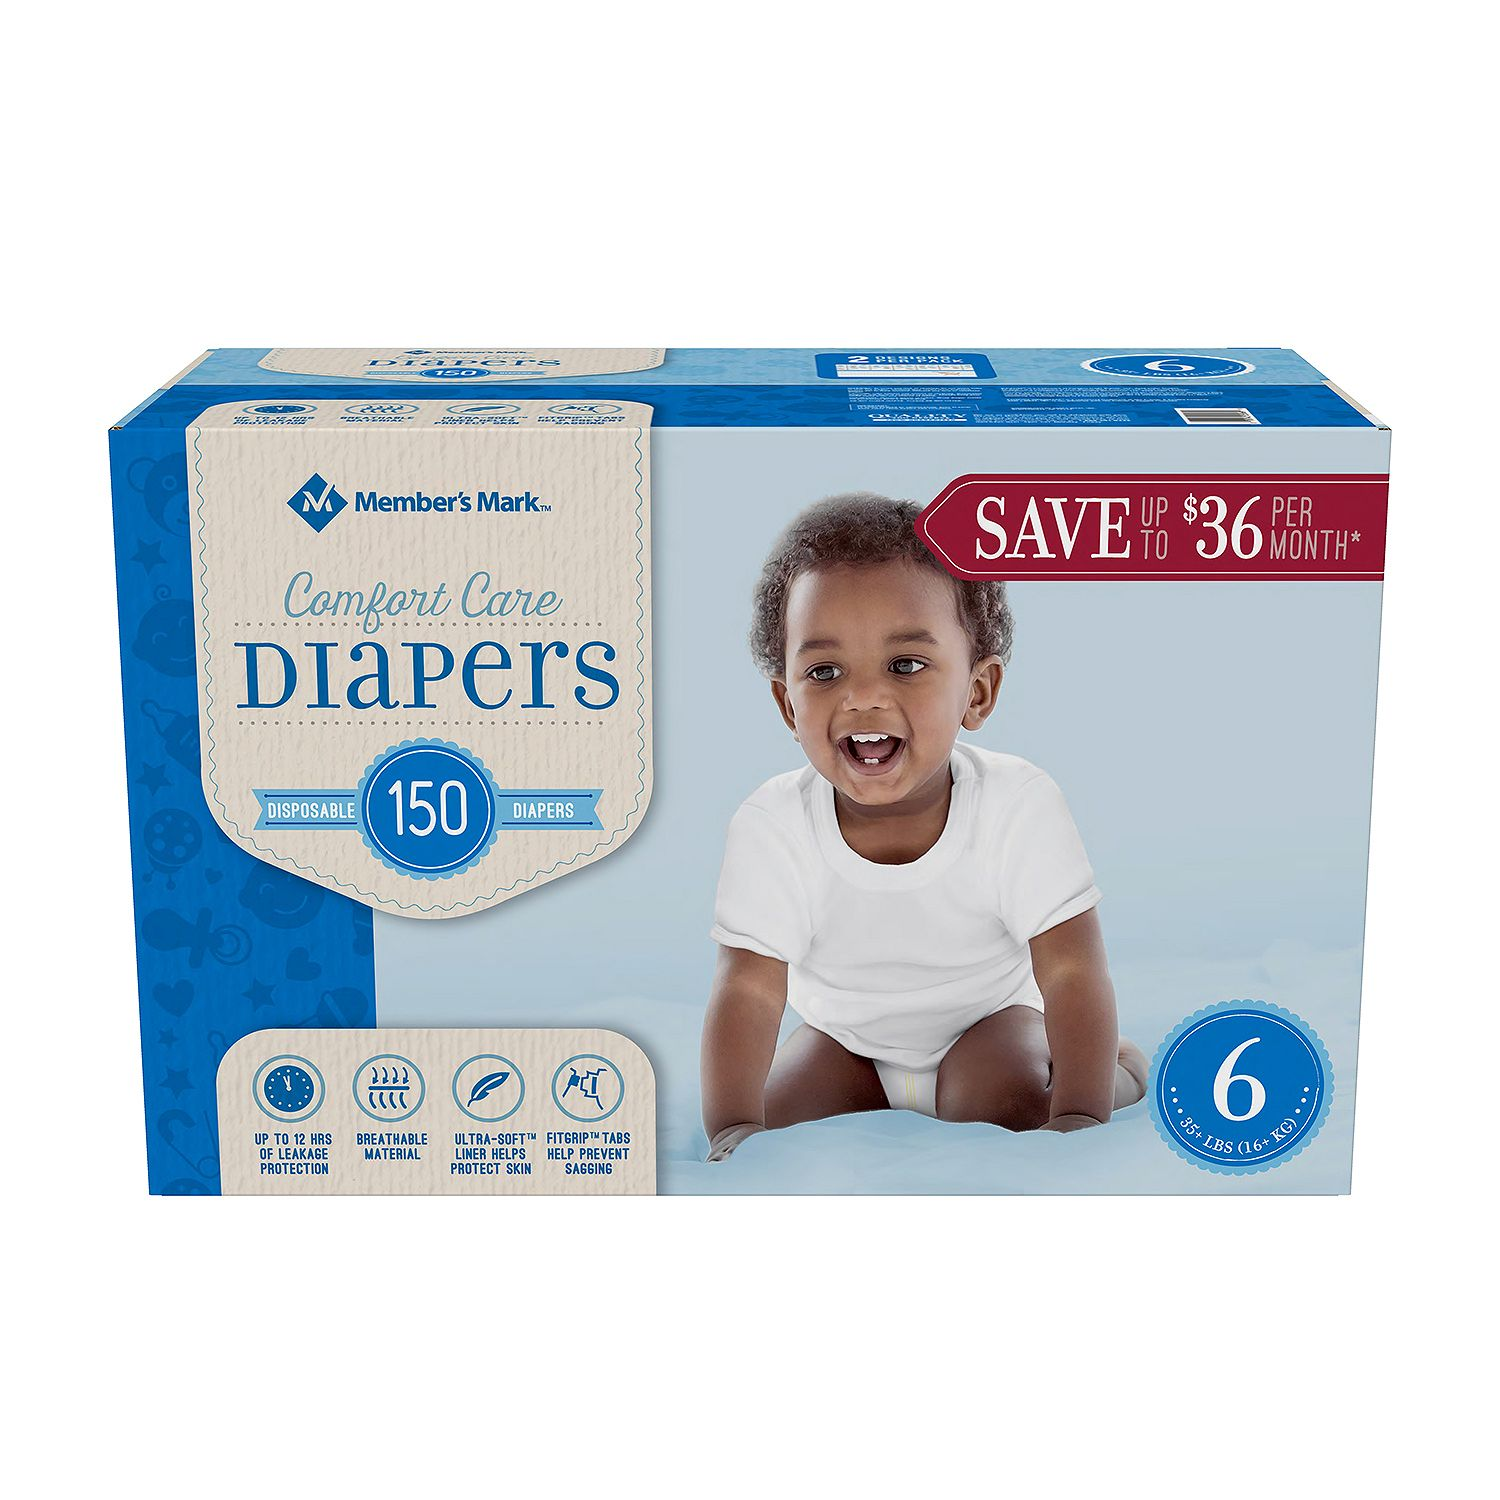 Member's Mark Comfort Care Baby Diapers Size 6 - 150 ct. ( Weight 35+ lbs.) - Bulk Qty, Free Shipping - Comfortable, Soft, No leaking & Good nite Diapers